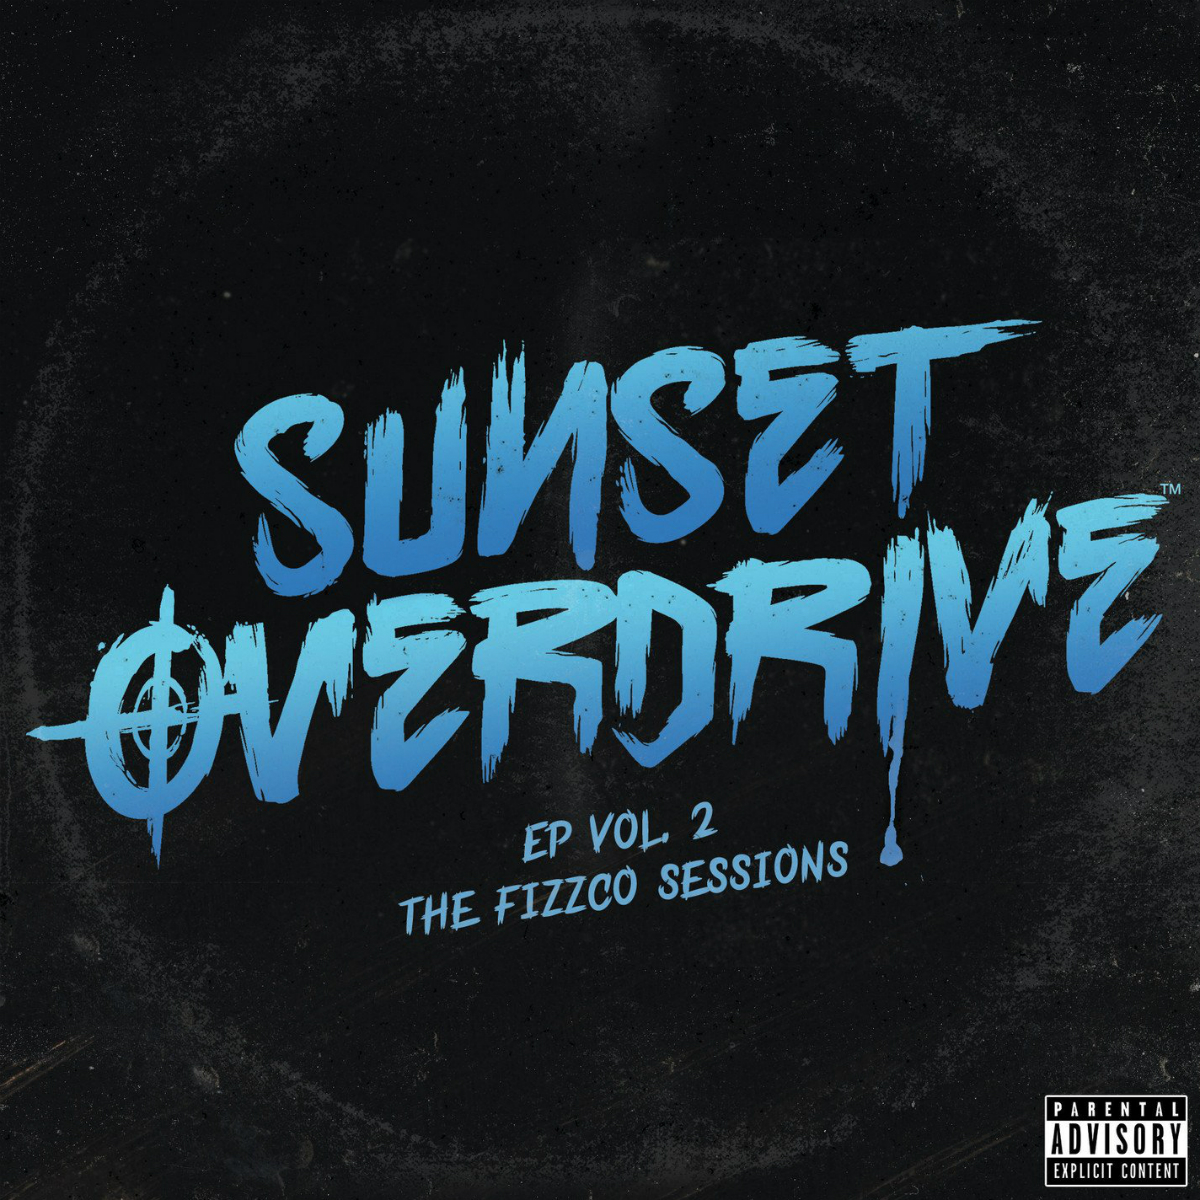 Sunset_Overdrive_EP_2_cover1200x1200.jpg